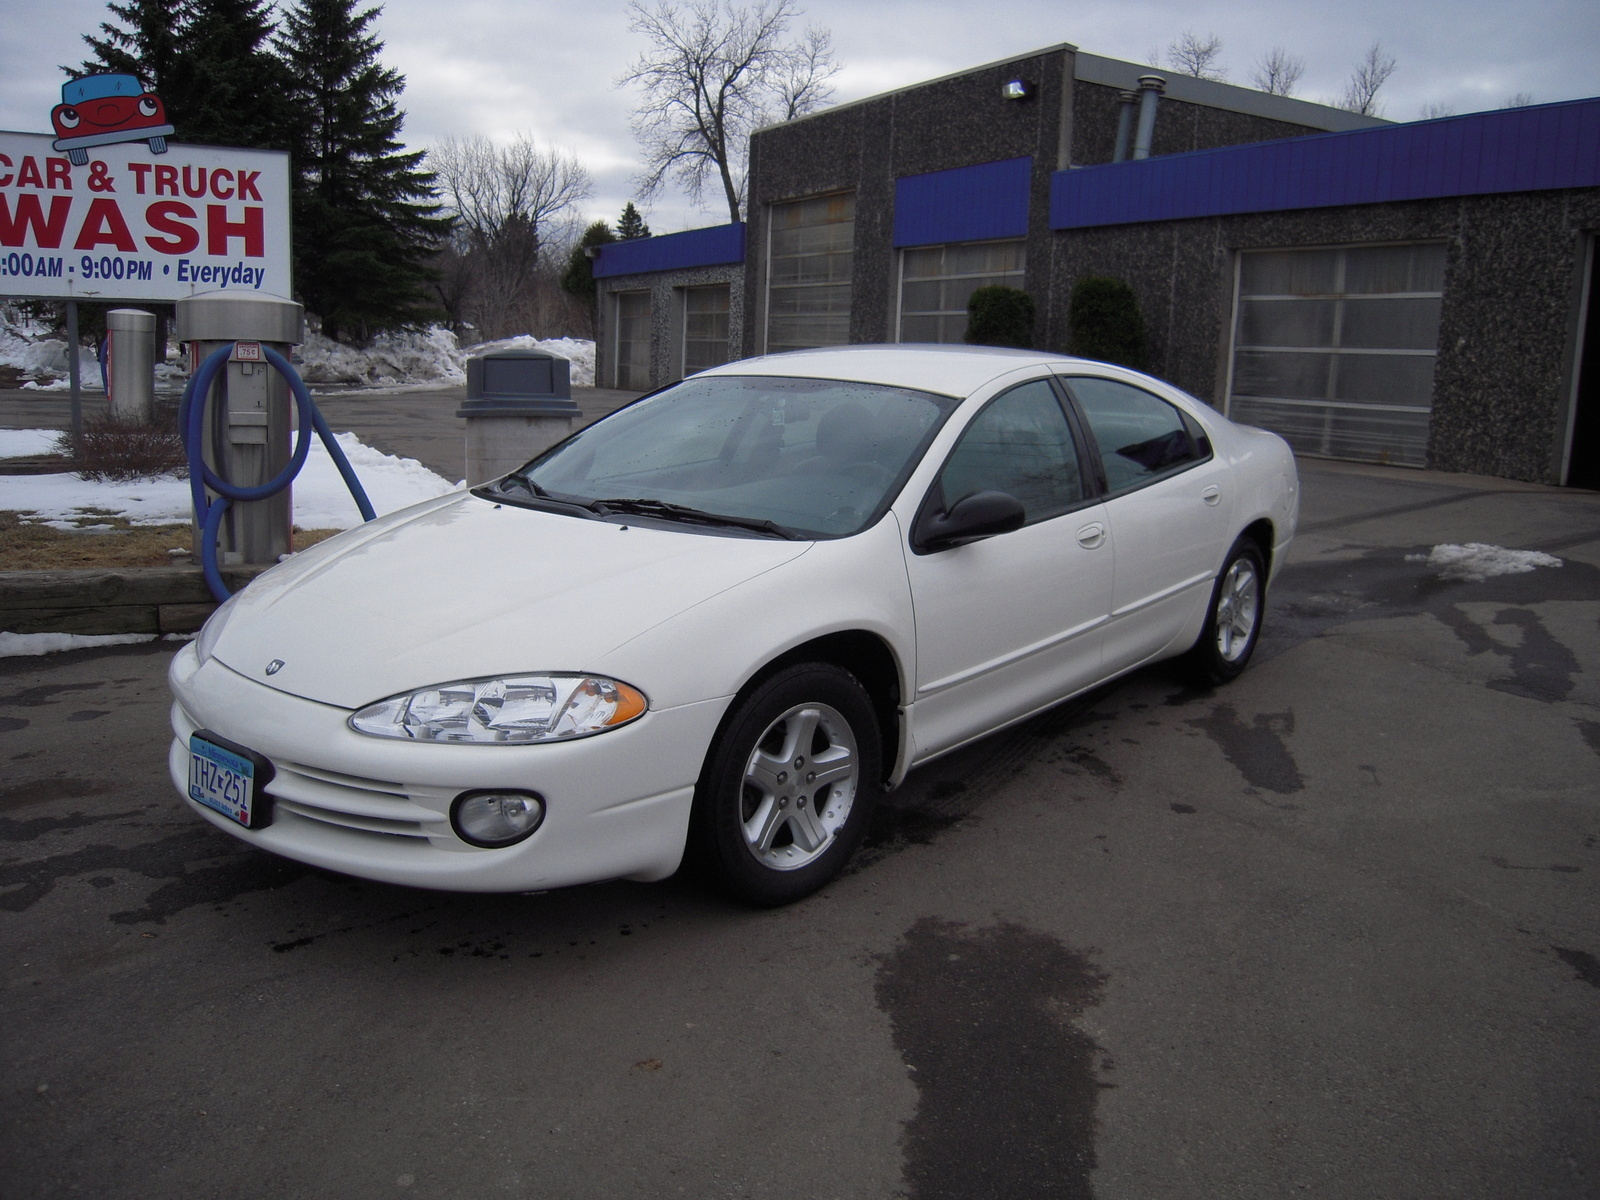 Ram Srt 10 >> 2004 Dodge Intrepid - Overview - CarGurus